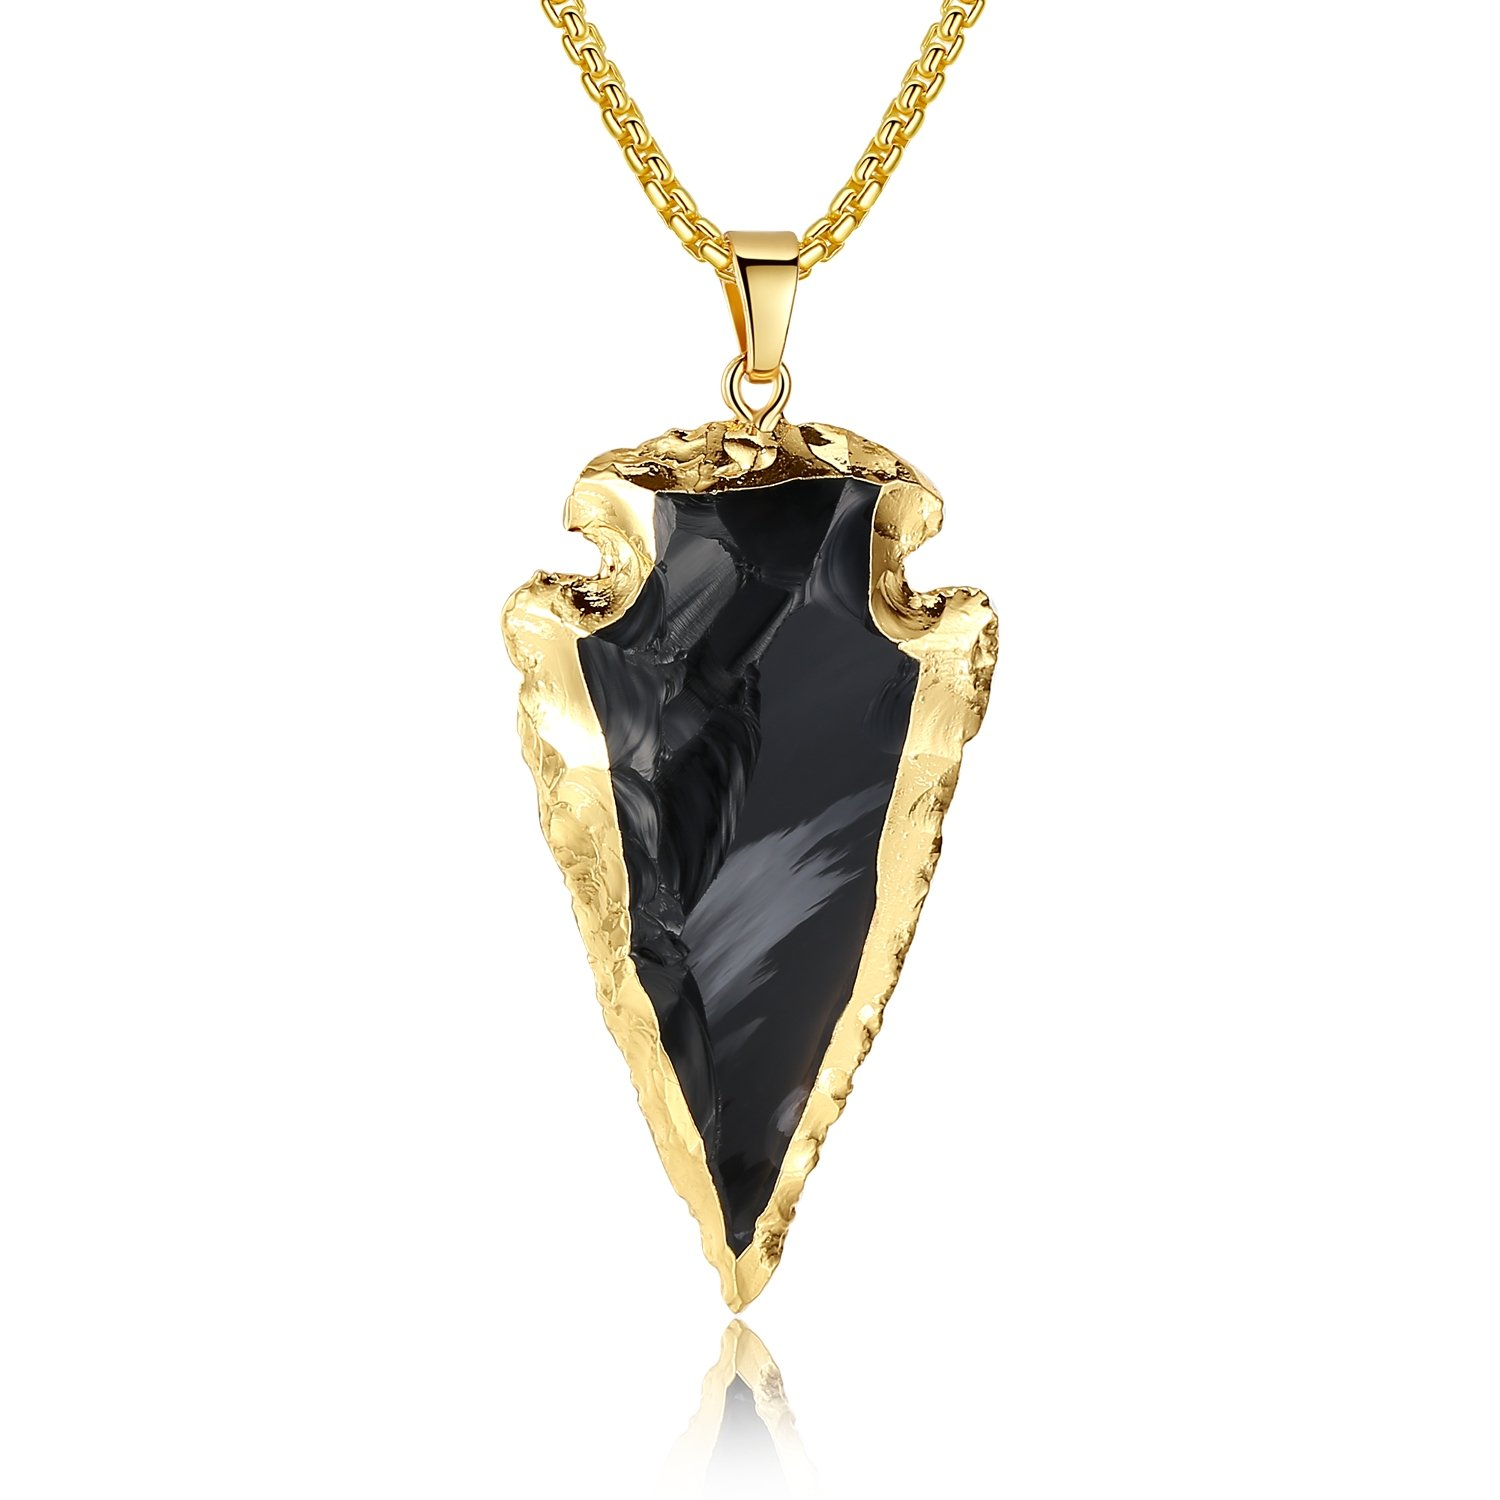 COAI Raw Obsidian Dragonglass Arrowhead Pendant Long Necklace 31.5''